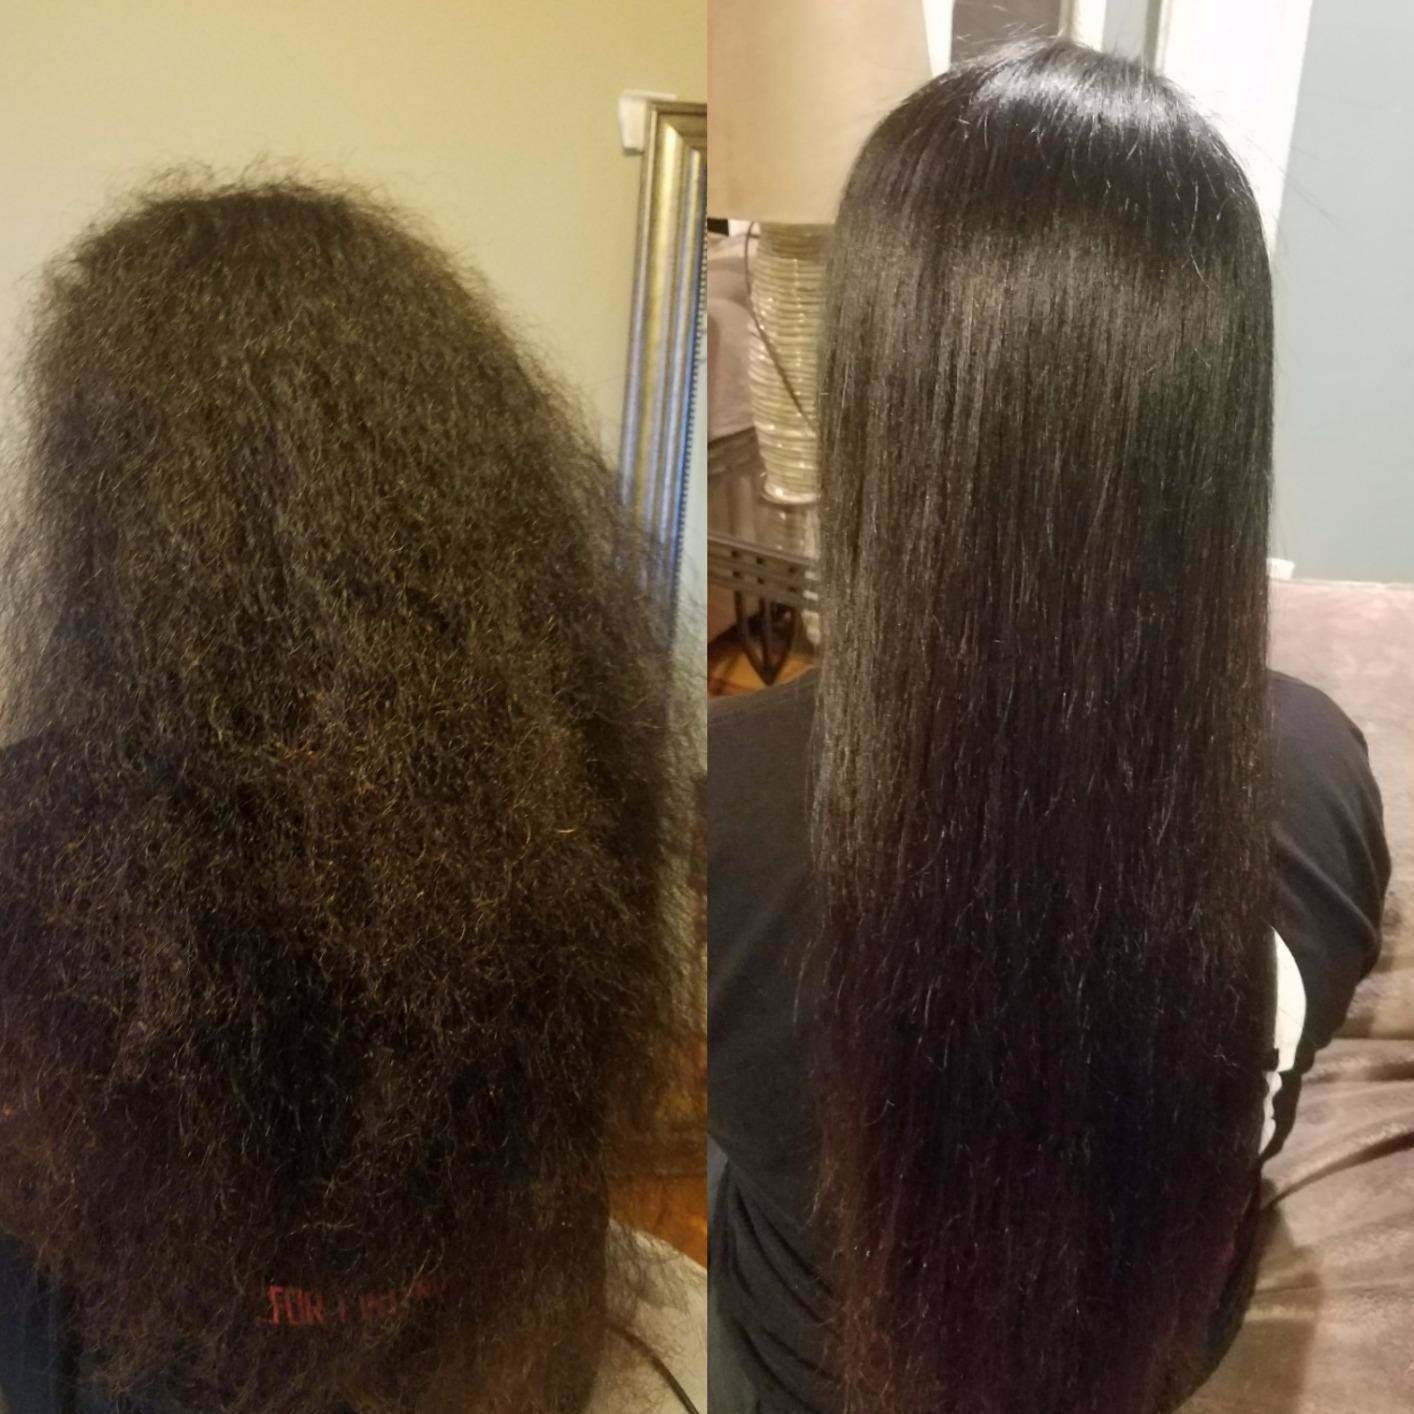 A before/after of a reviewer's hair: on the left with frizzy brushed out hair, on the right the same hair sleek and straight